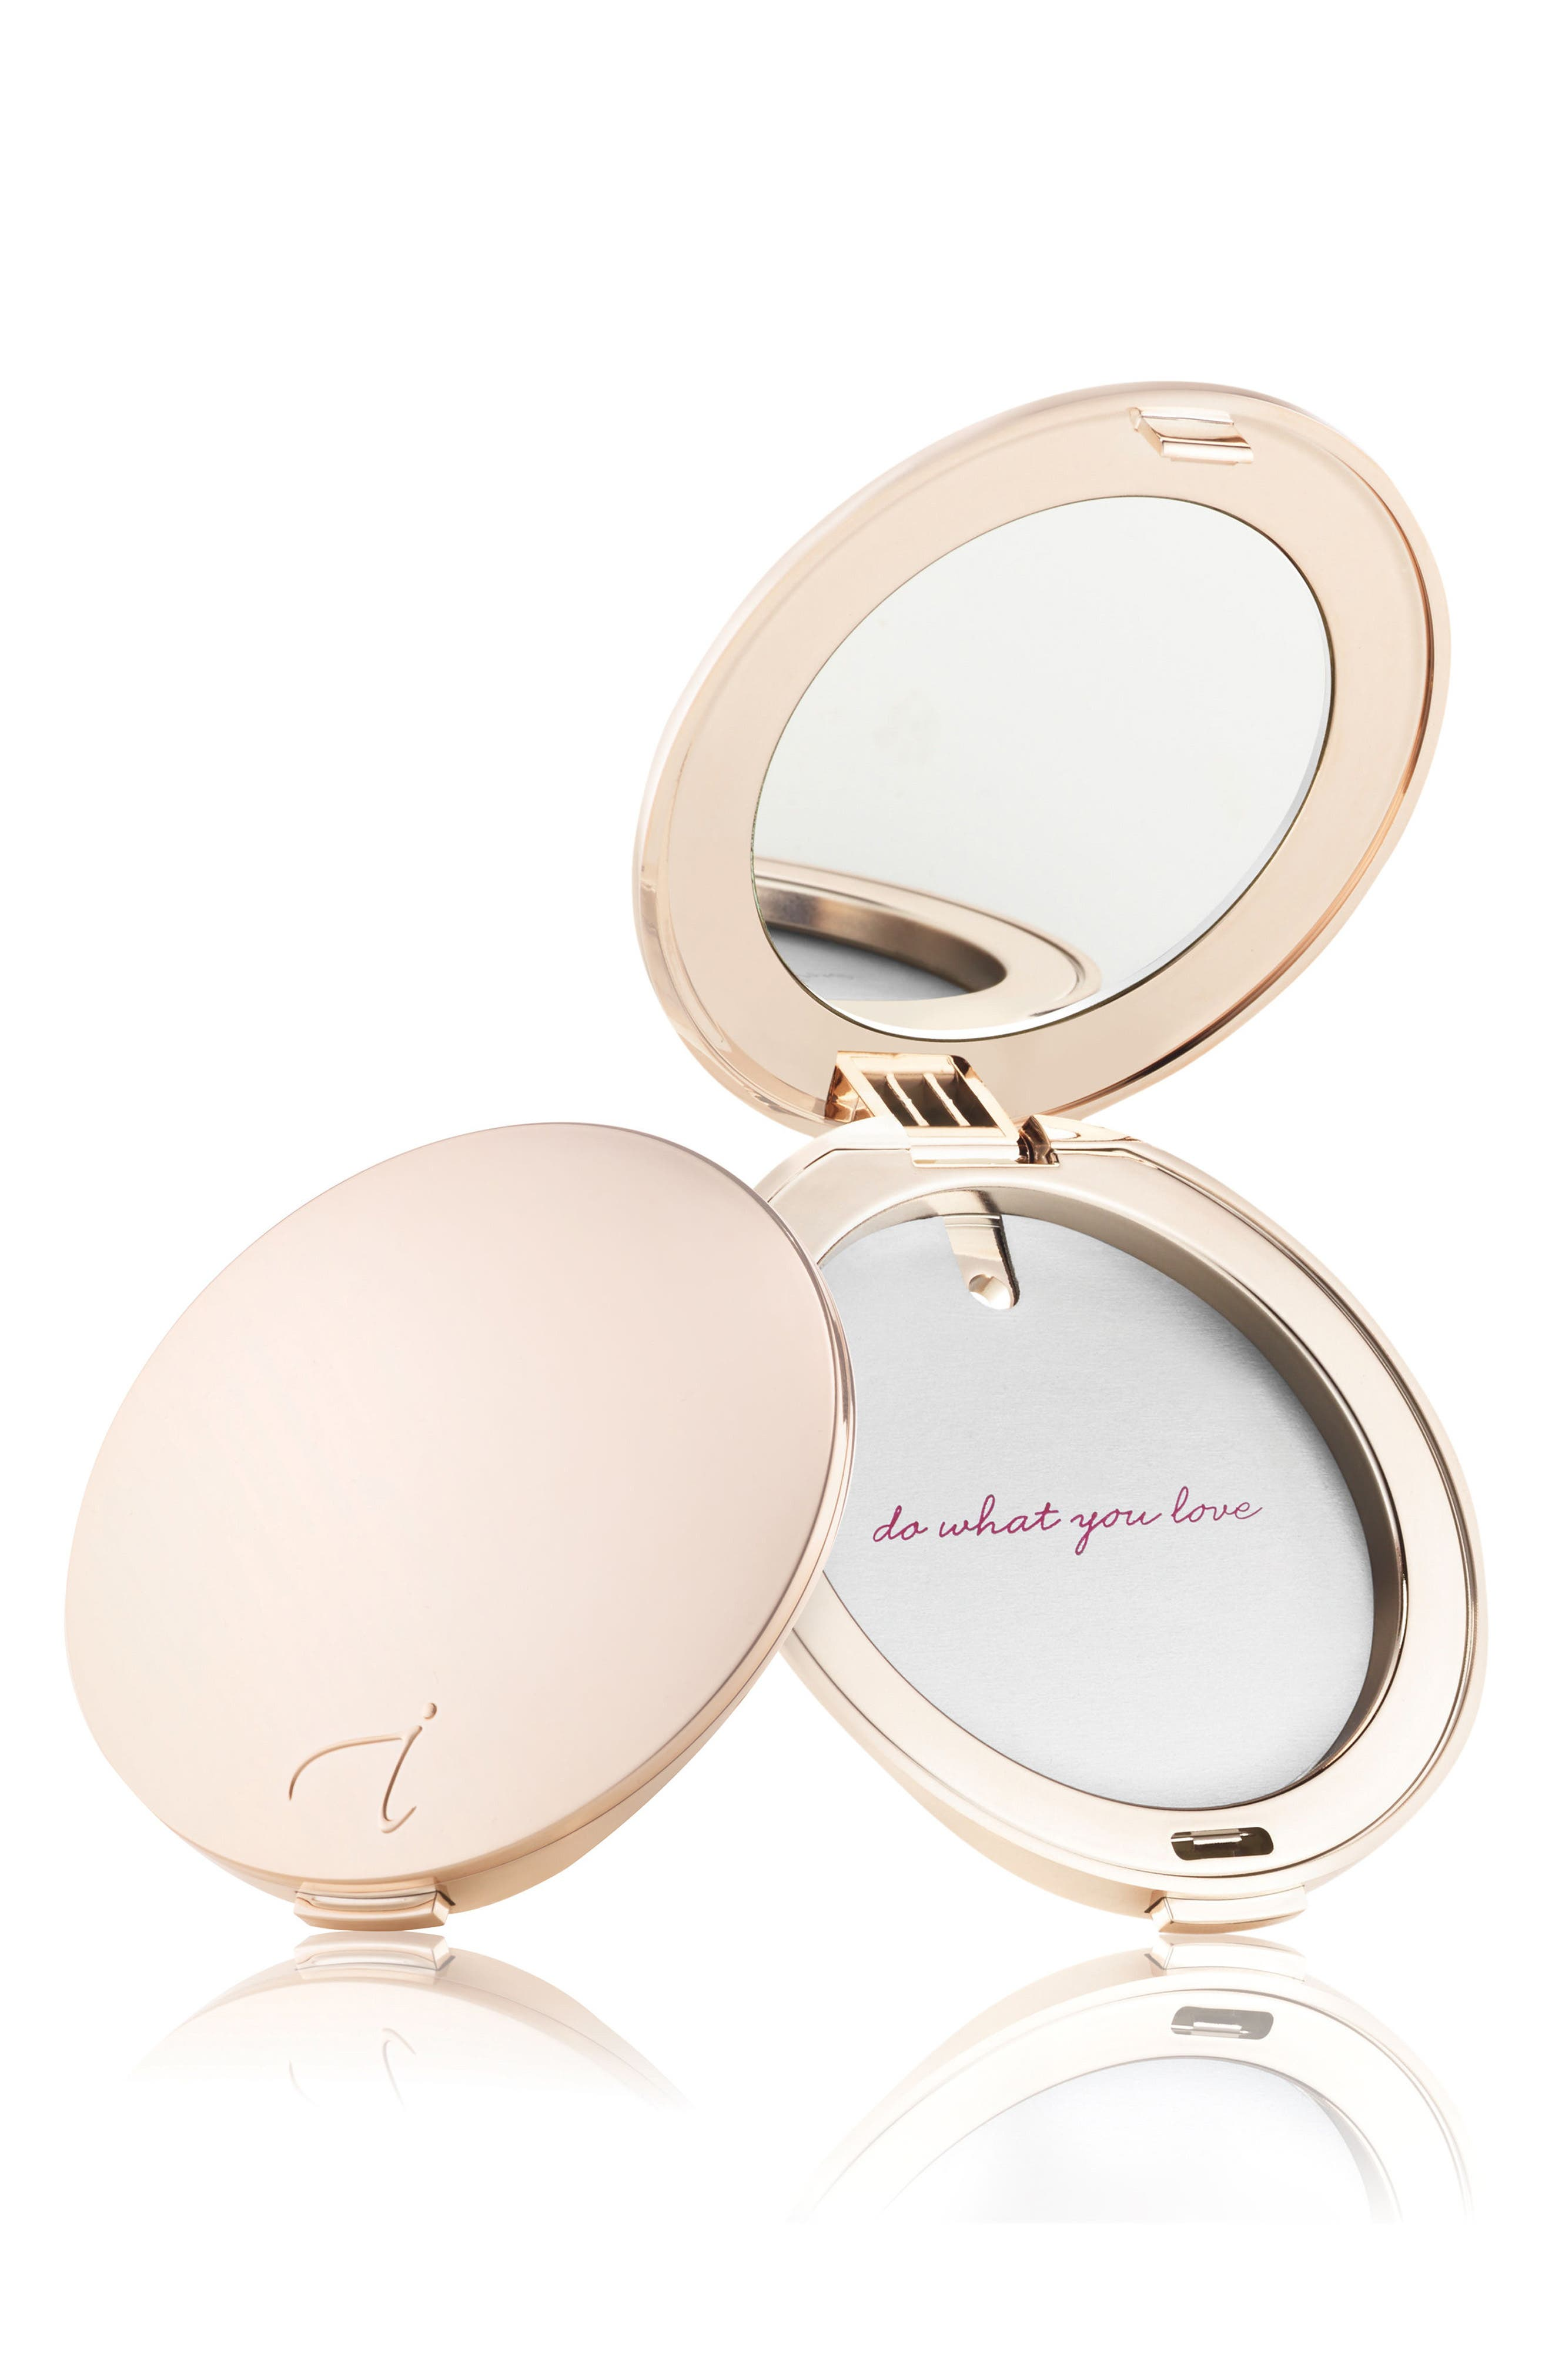 Alternate Image 1 Selected - jane iredale Refillable Compact